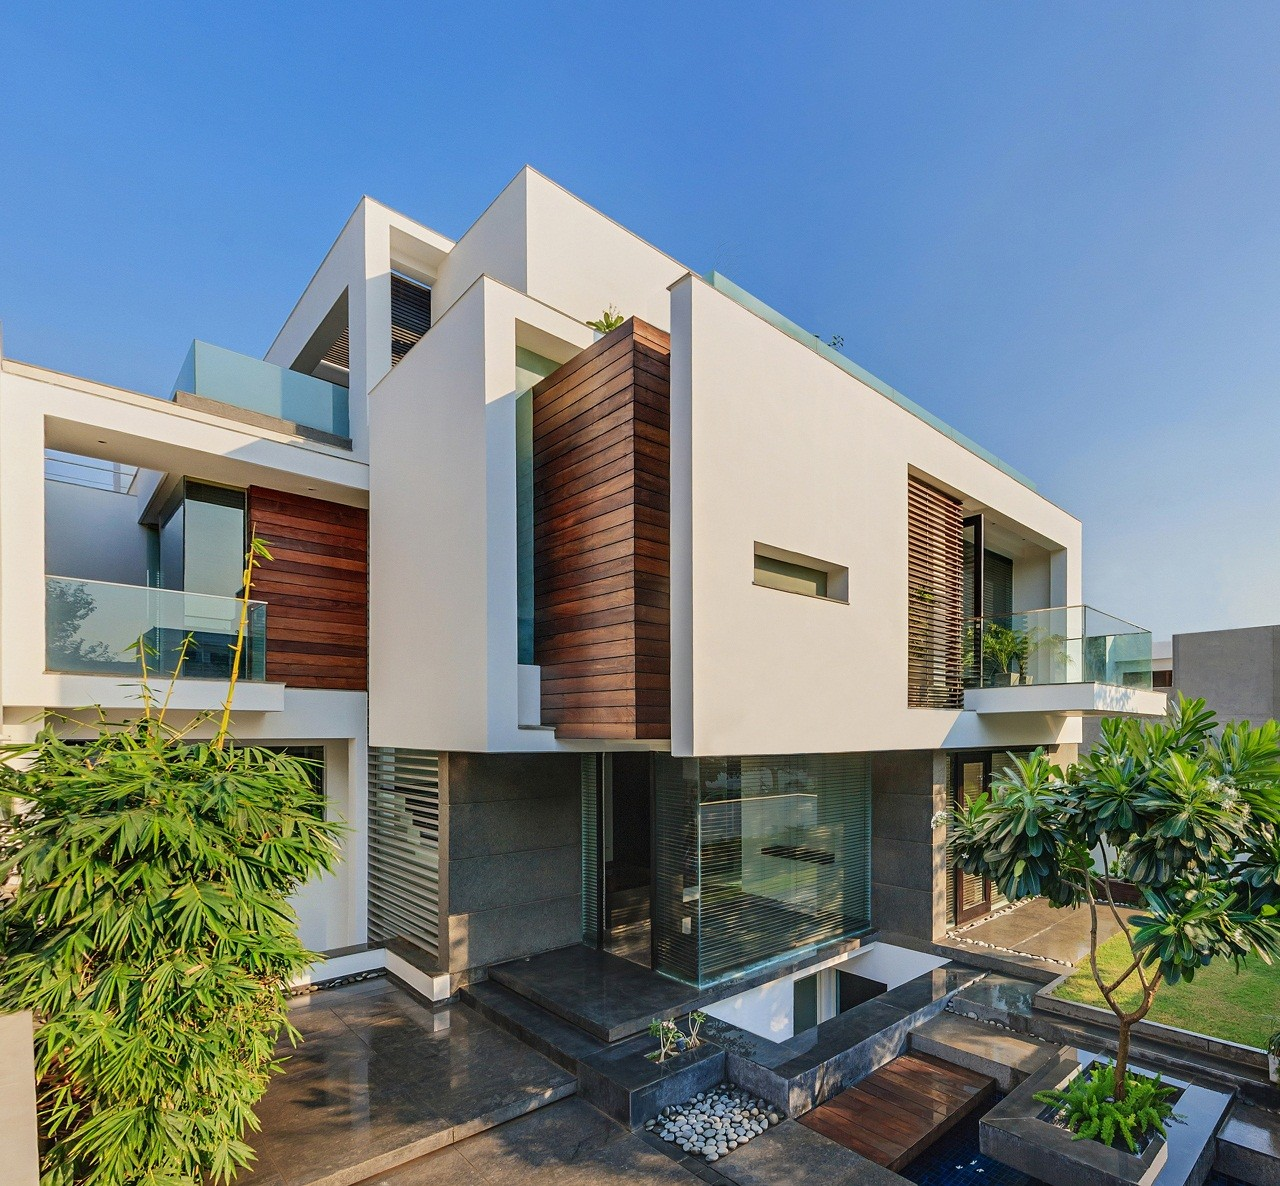 Home Design Exterior Ideas In India: The Overhang House / DADA & Partners